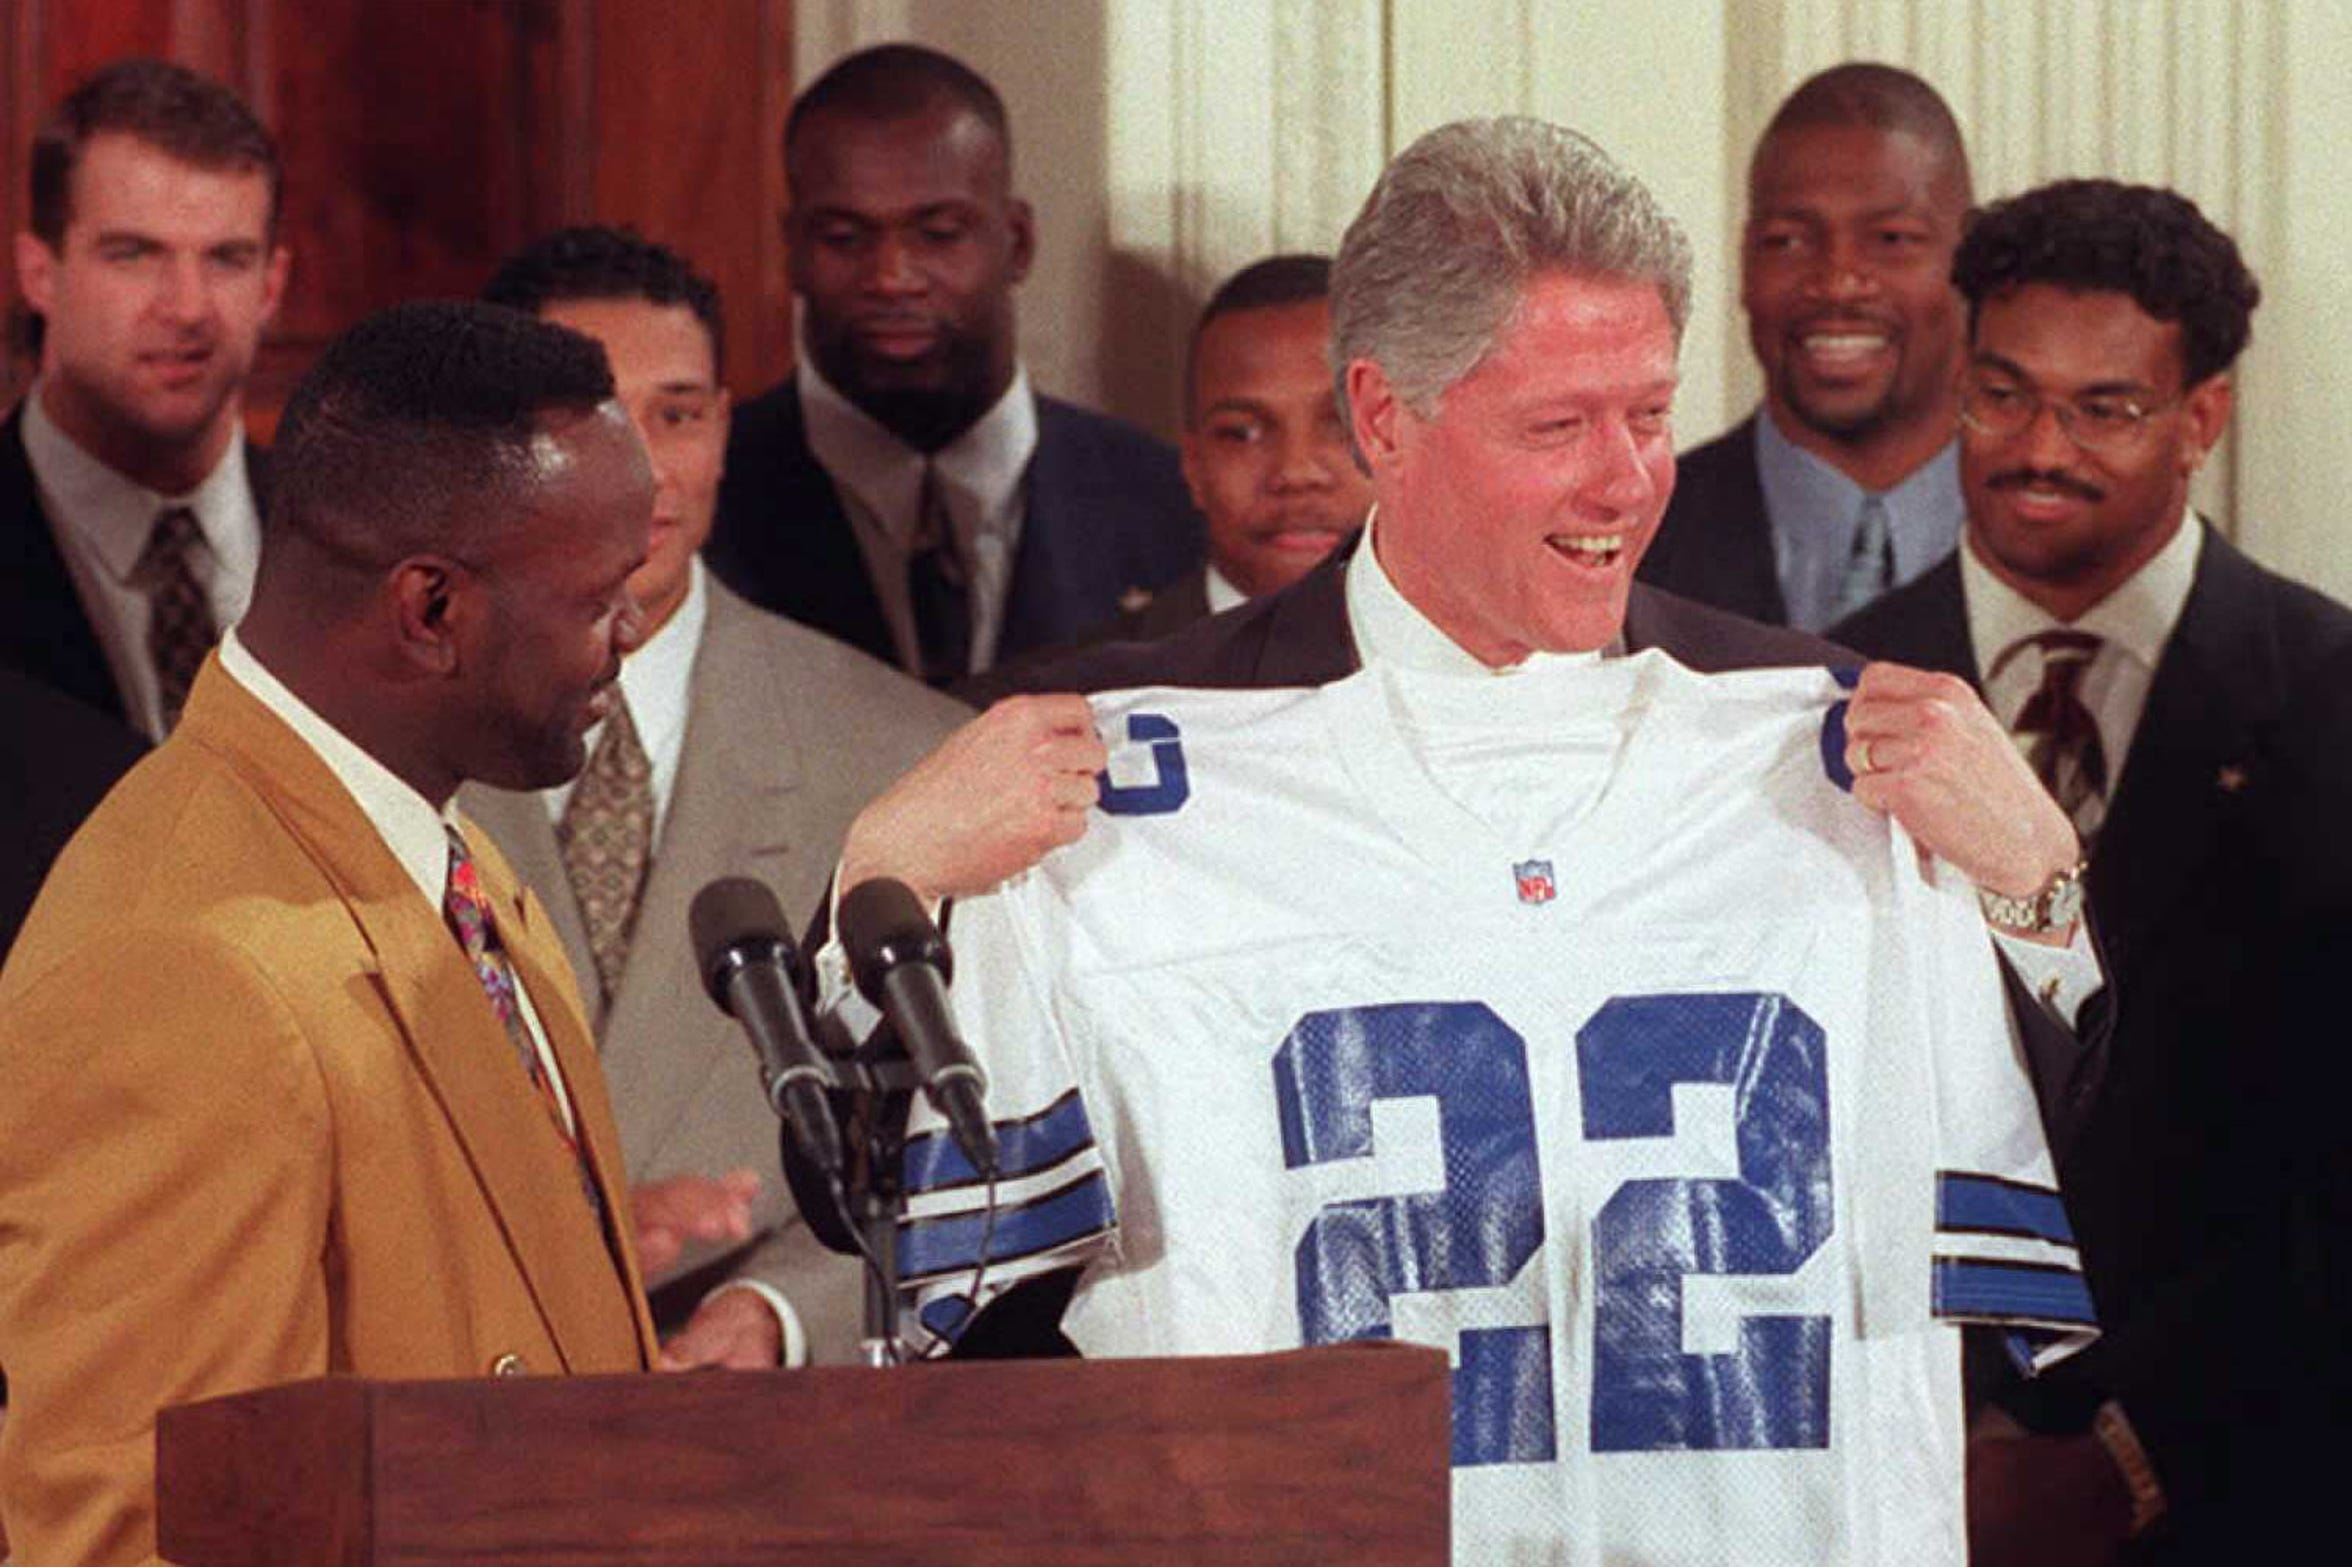 WASHINGTON, DC - FEBRUARY 13:  US President Bill Clinton (R) holds a Dallas Cowboys jersey presented to him by running back Emmitt Smith (L) bearing Smith's number during a ceremony 13 February at the White House to honor the Cowboys for their 28 January win in Super Bowl XXX. At rear are other members of the team.  (Photo credit should read JOYCE NALTCHAYAN/AFP/Getty Images)